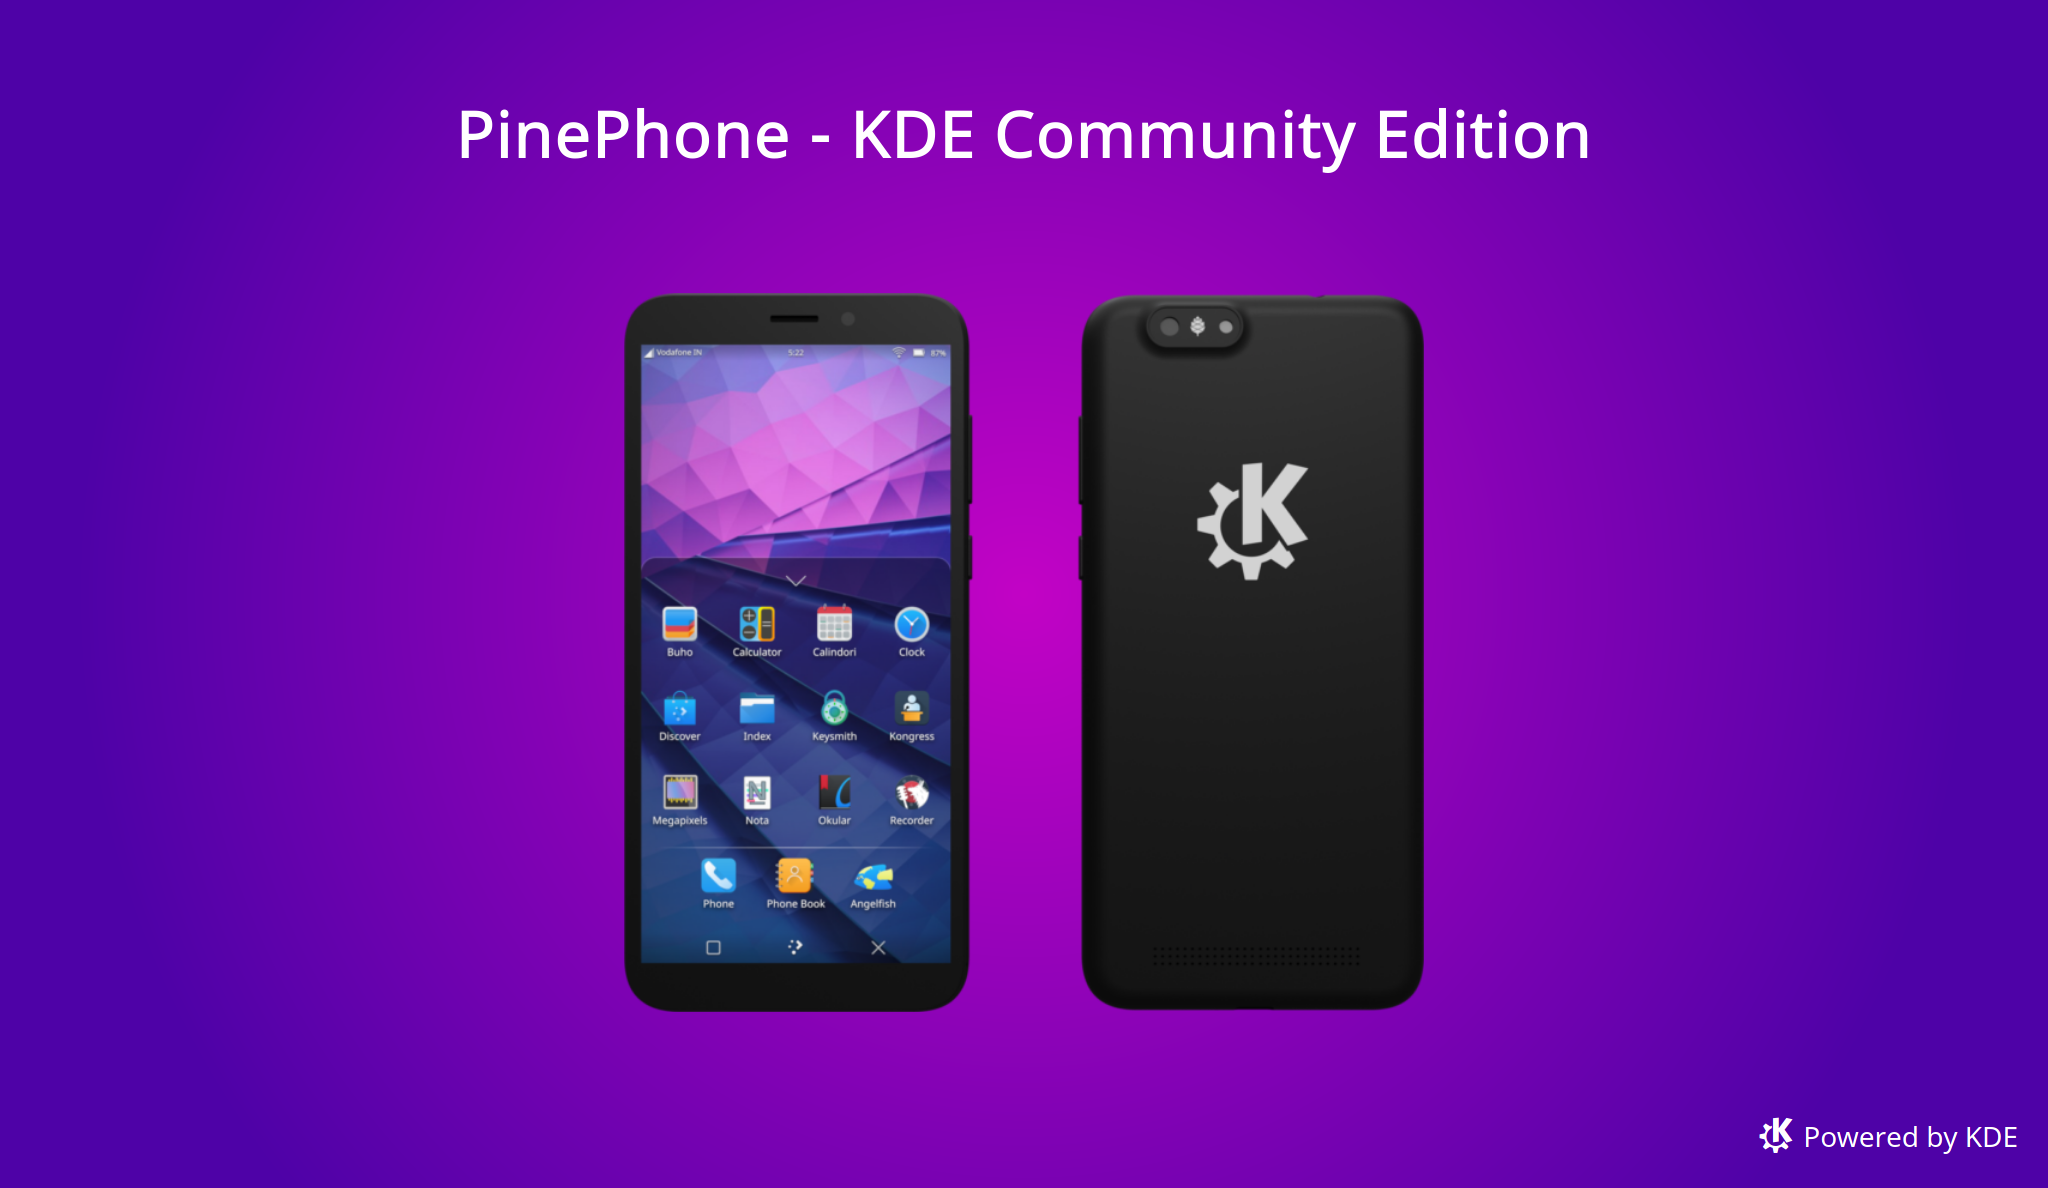 Pinephone KDE edition